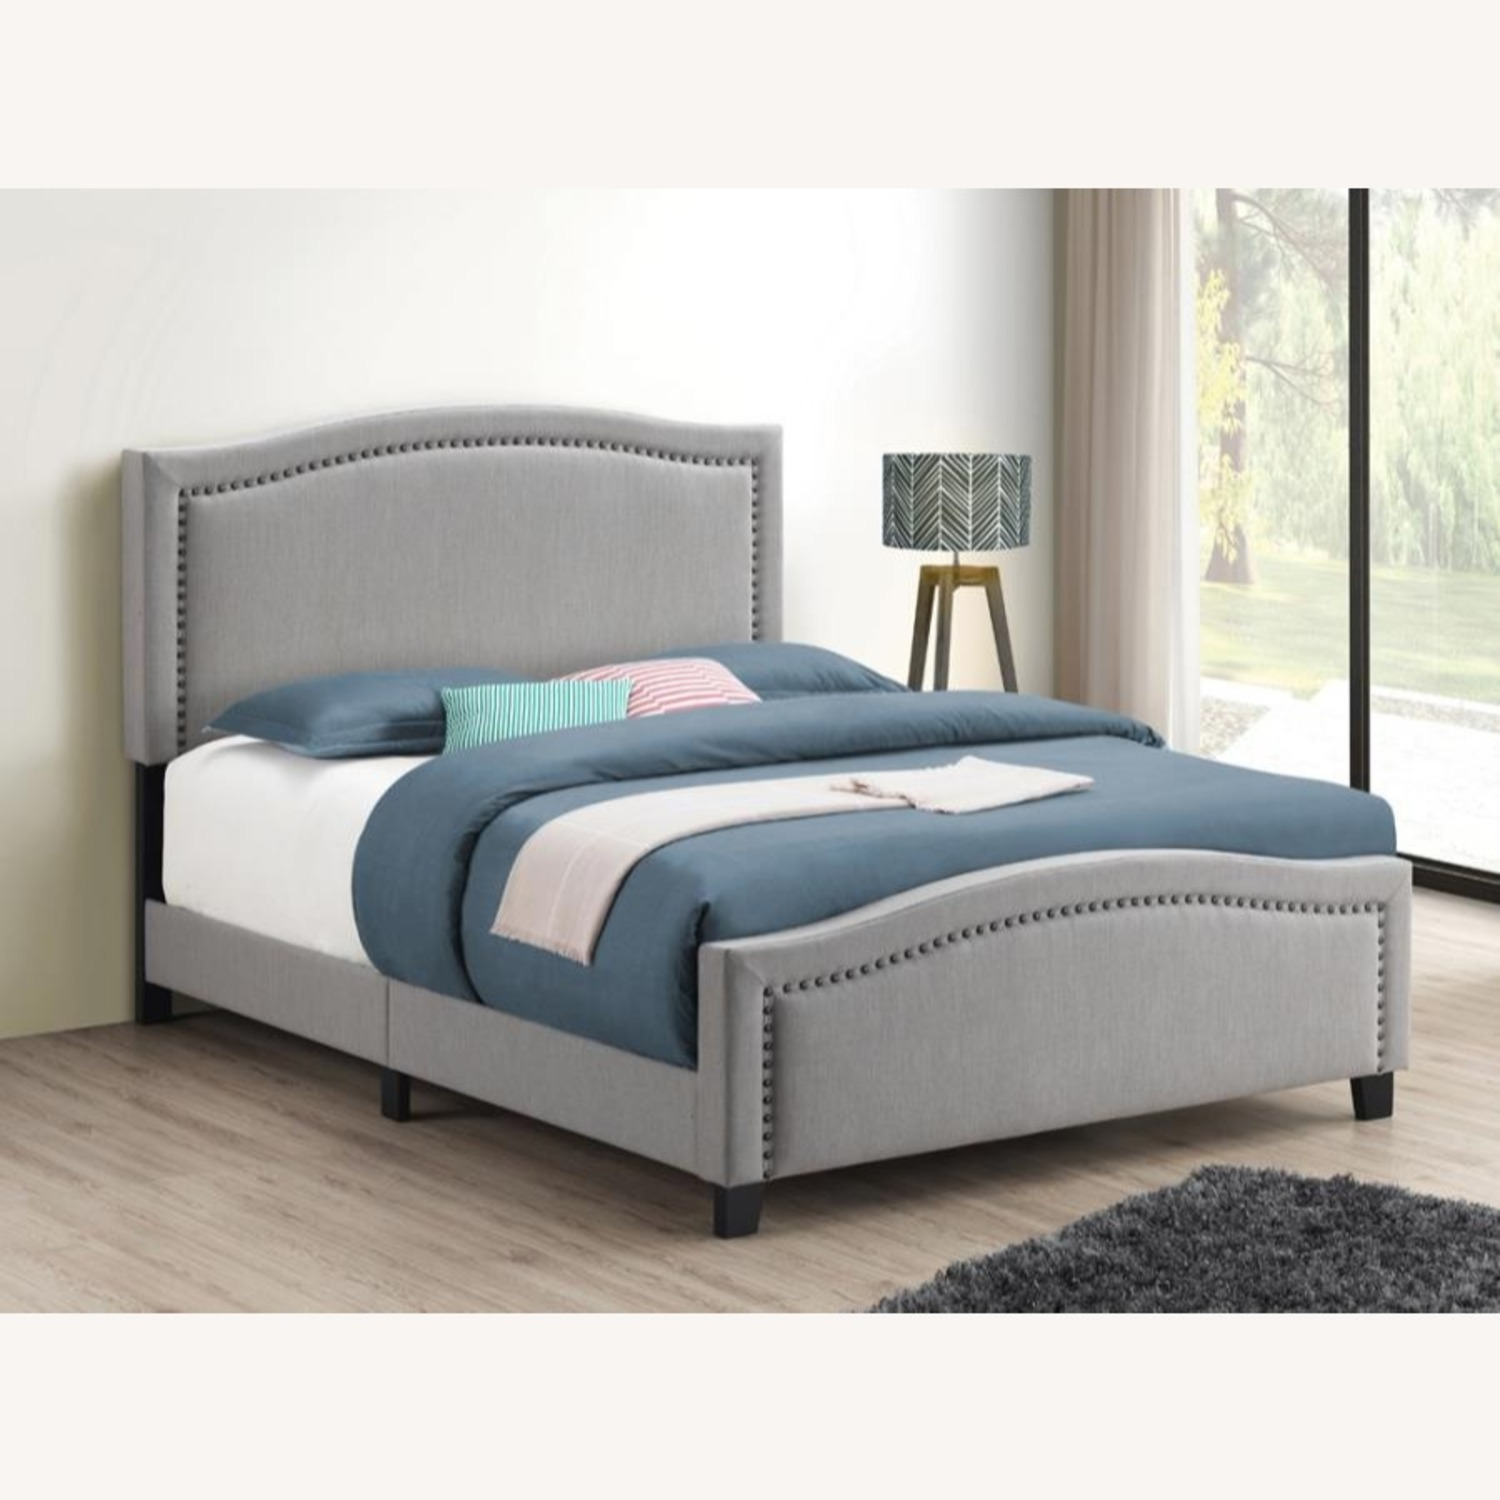 Modern Classic Queen Bed In Mineral Colored Fabric - image-1